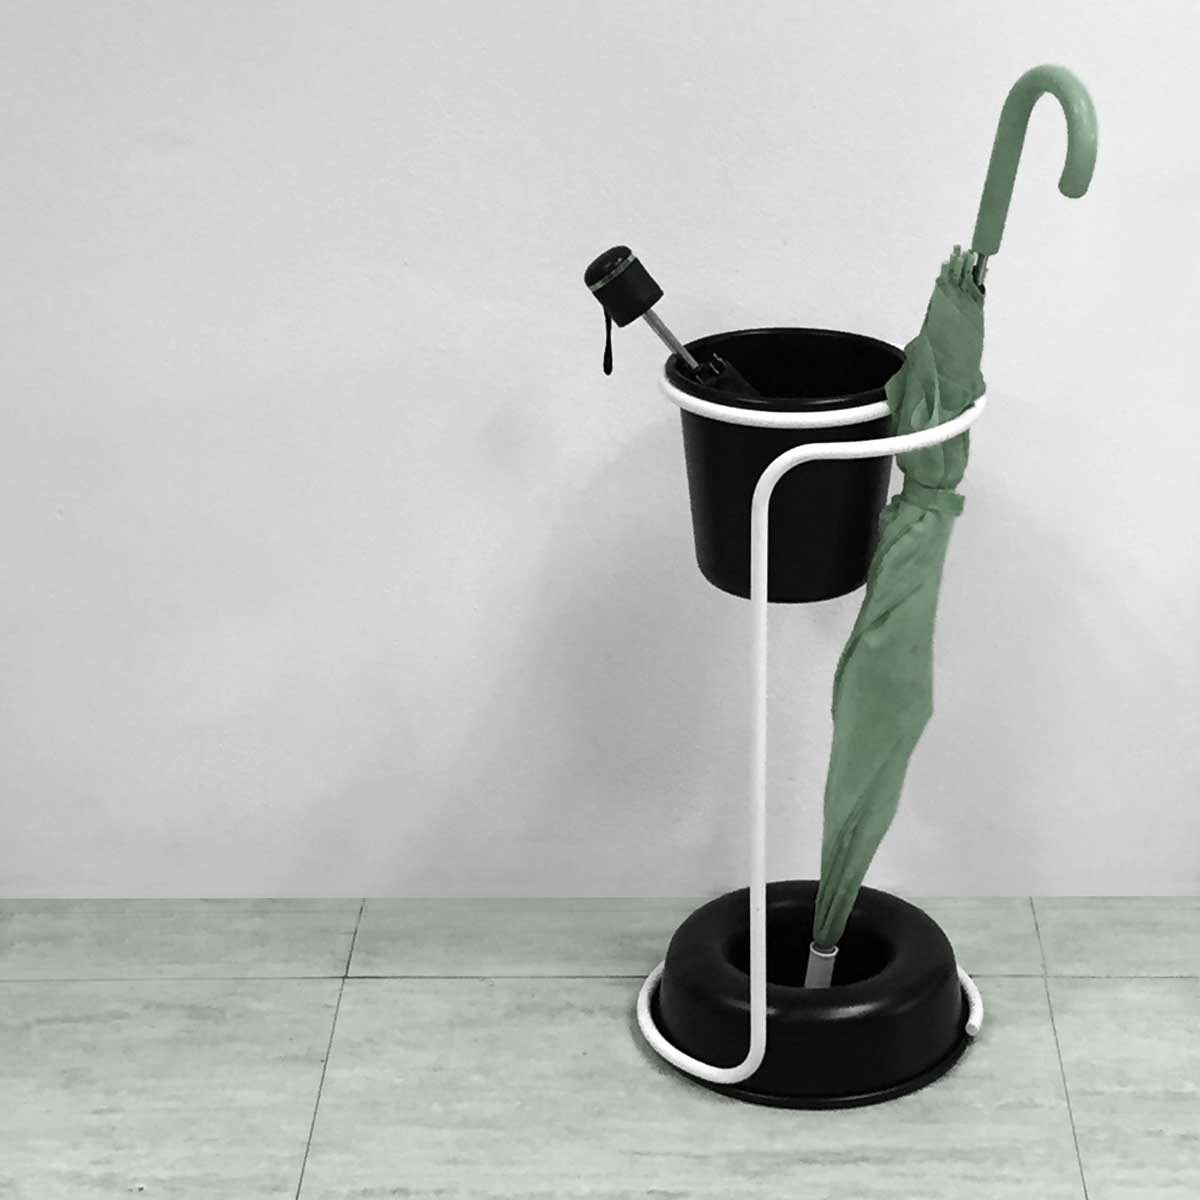 Francesco-Ruffa_Officinanove_Boa_umbrellastand_design_1